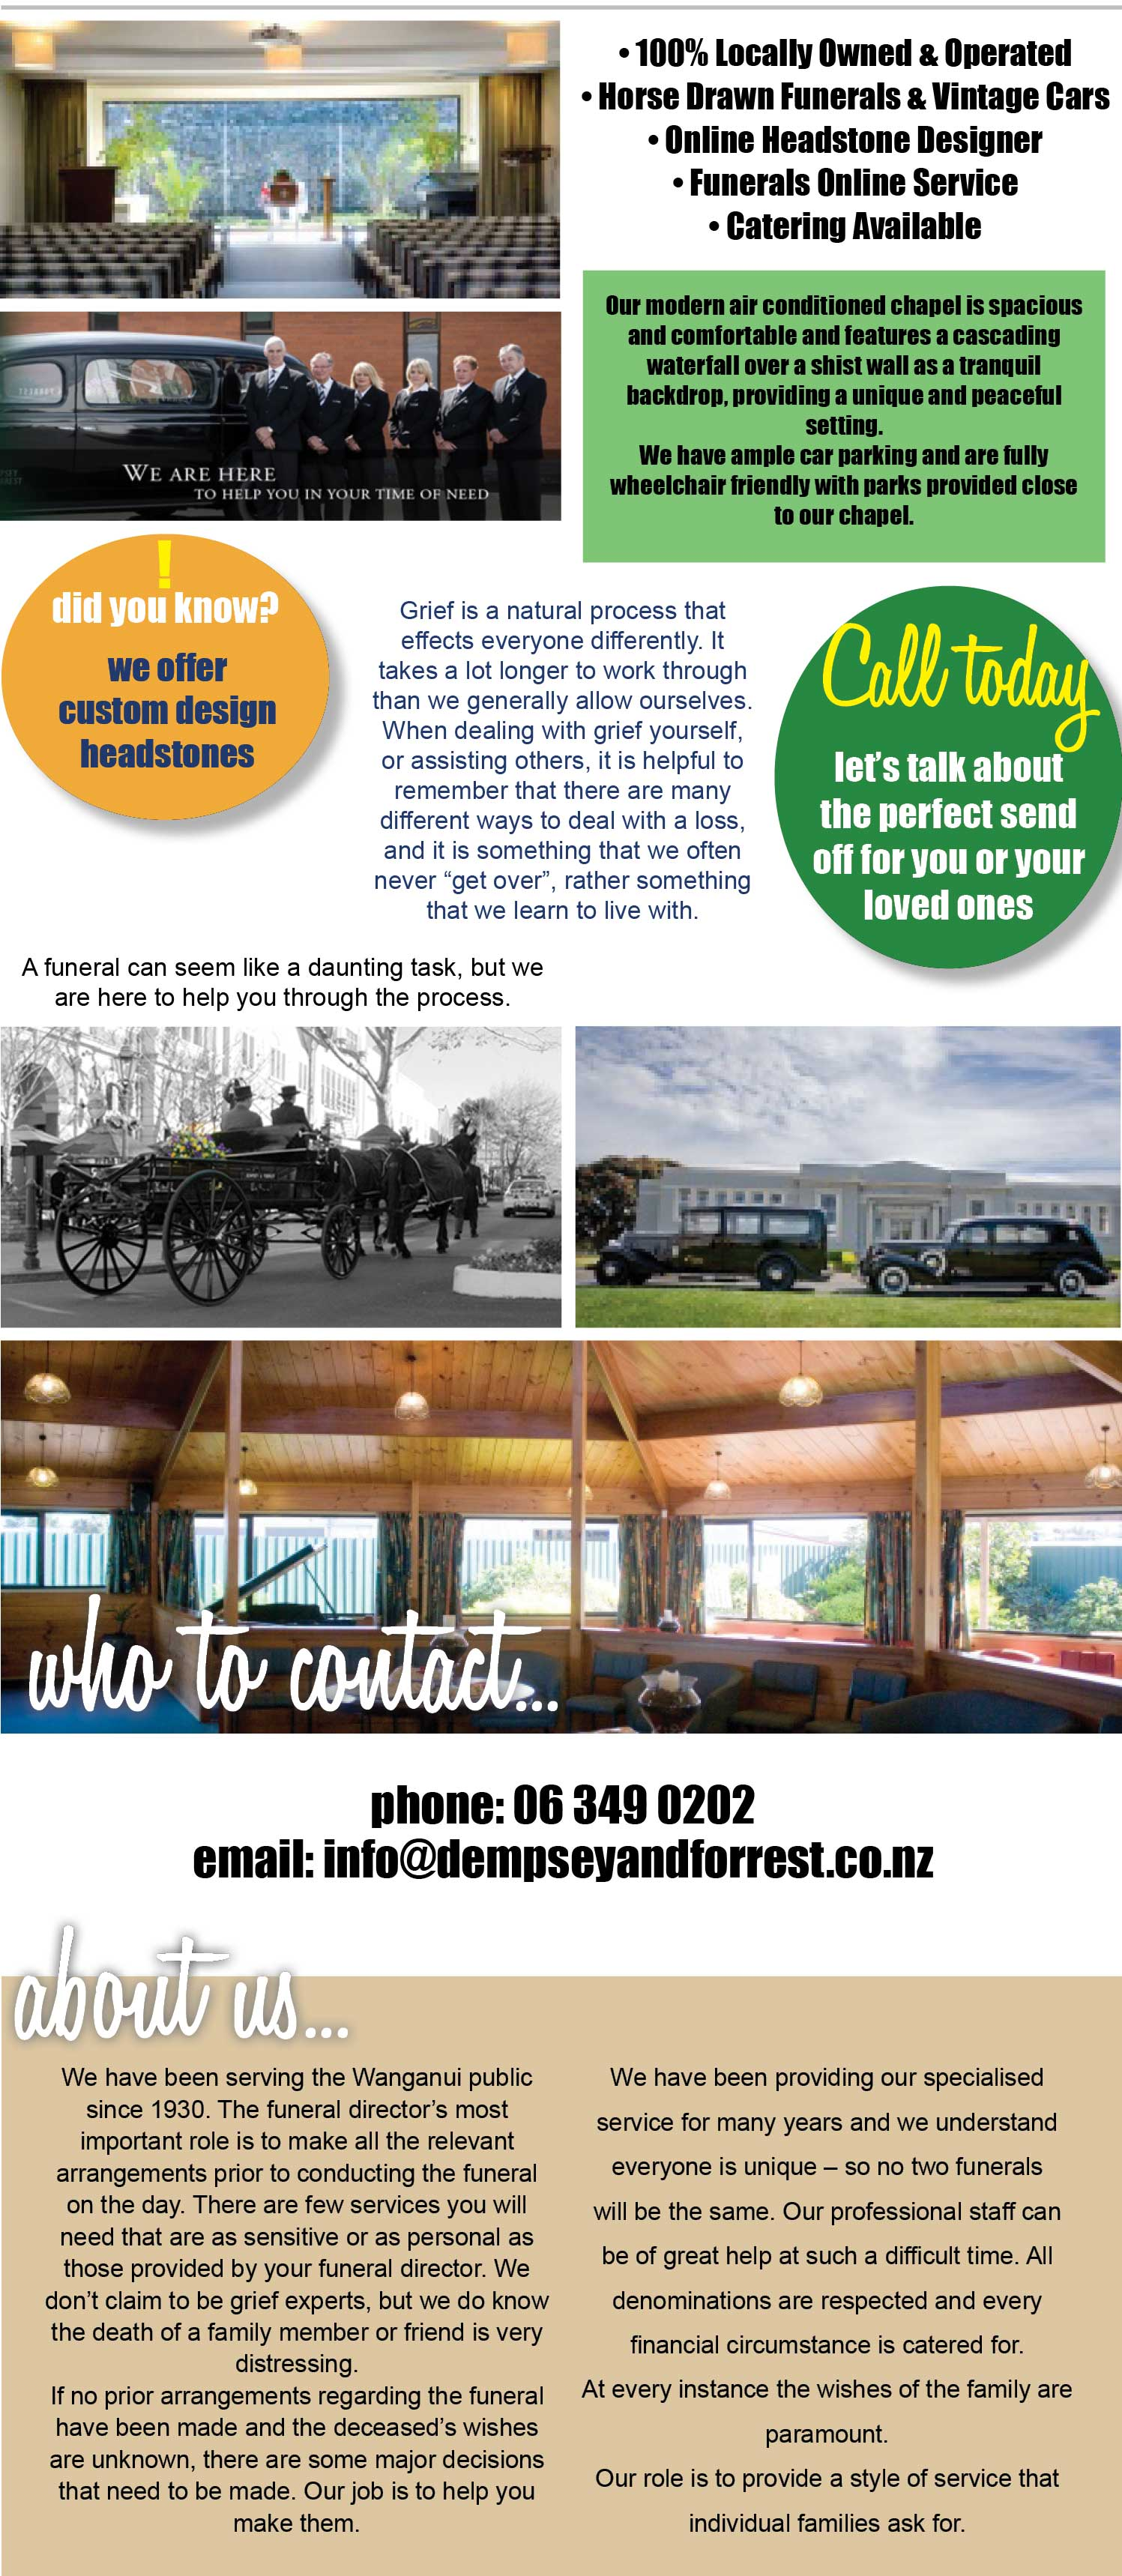 Dempsey & Forrest Funeral Directors, Wanganui, 100% locally owned and operated. Horse drawn & vintage car funerals, online headstone designer, funerals online service, catering available. Funeral Homes. Funeral home. Funeral Home Wanganui. Wanganui Funeral Homes